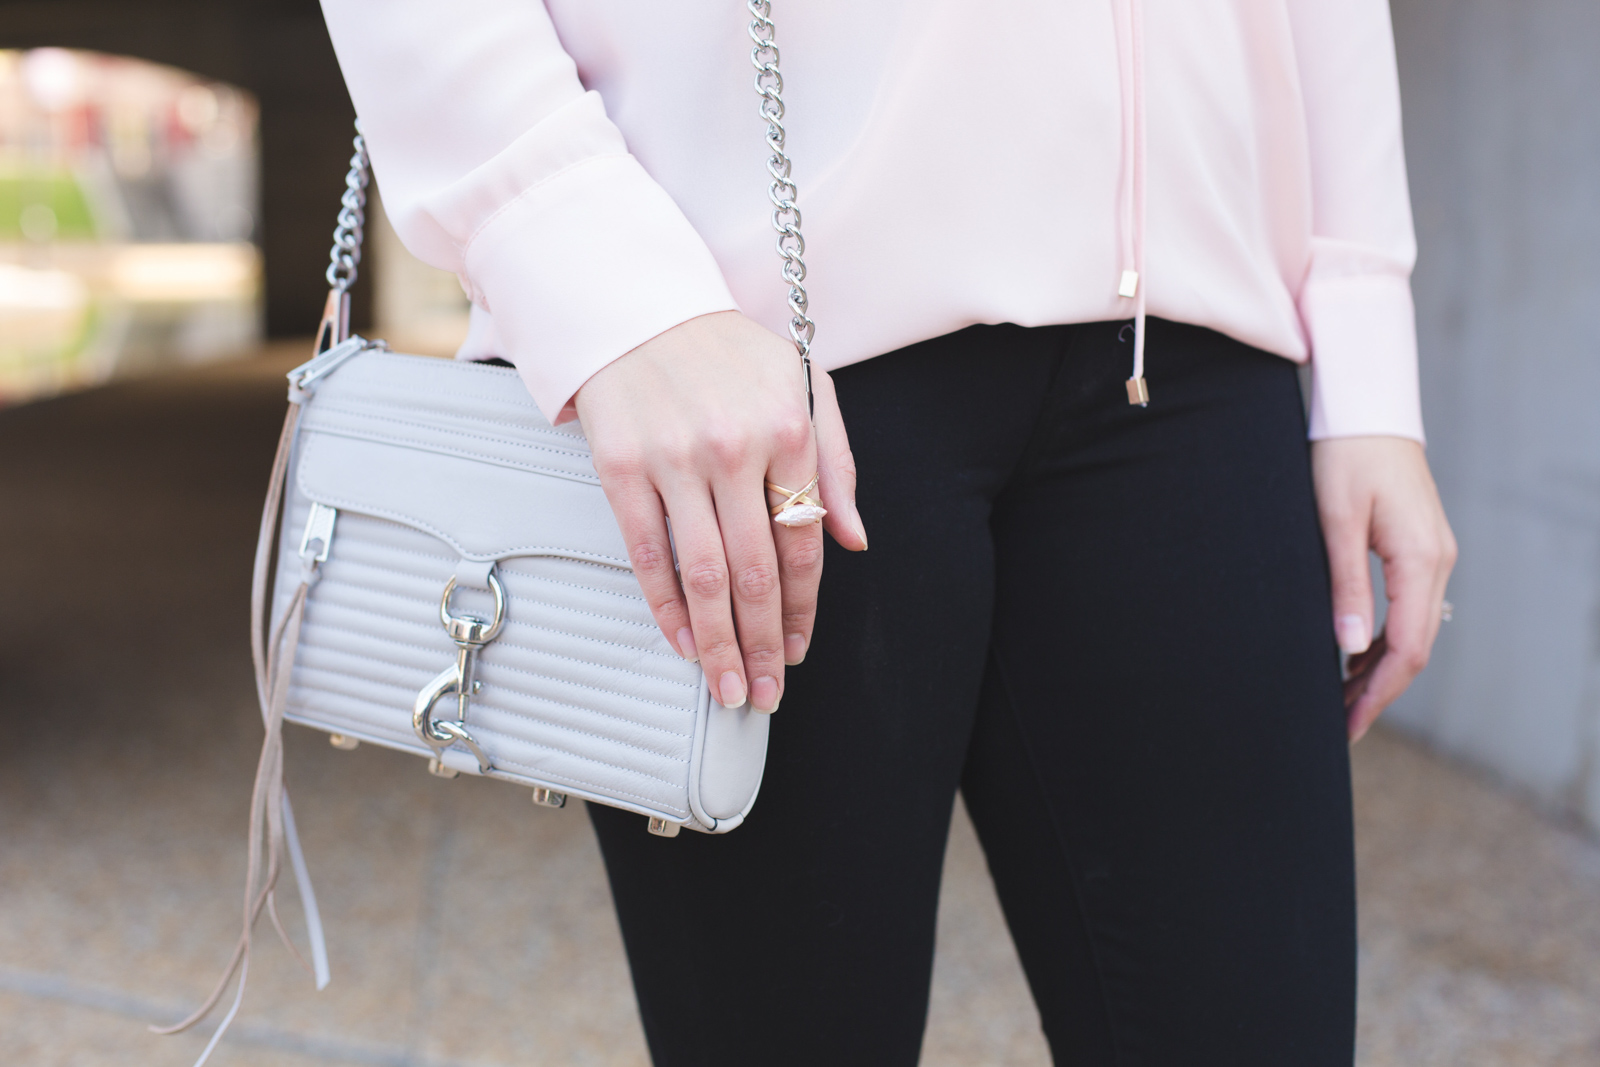 blush, black, and grey outfit - black jeans, blush top, grey mini mac bag | Click through for more Spring outfit inspiration or to shop this look! www.bylaurenm.com